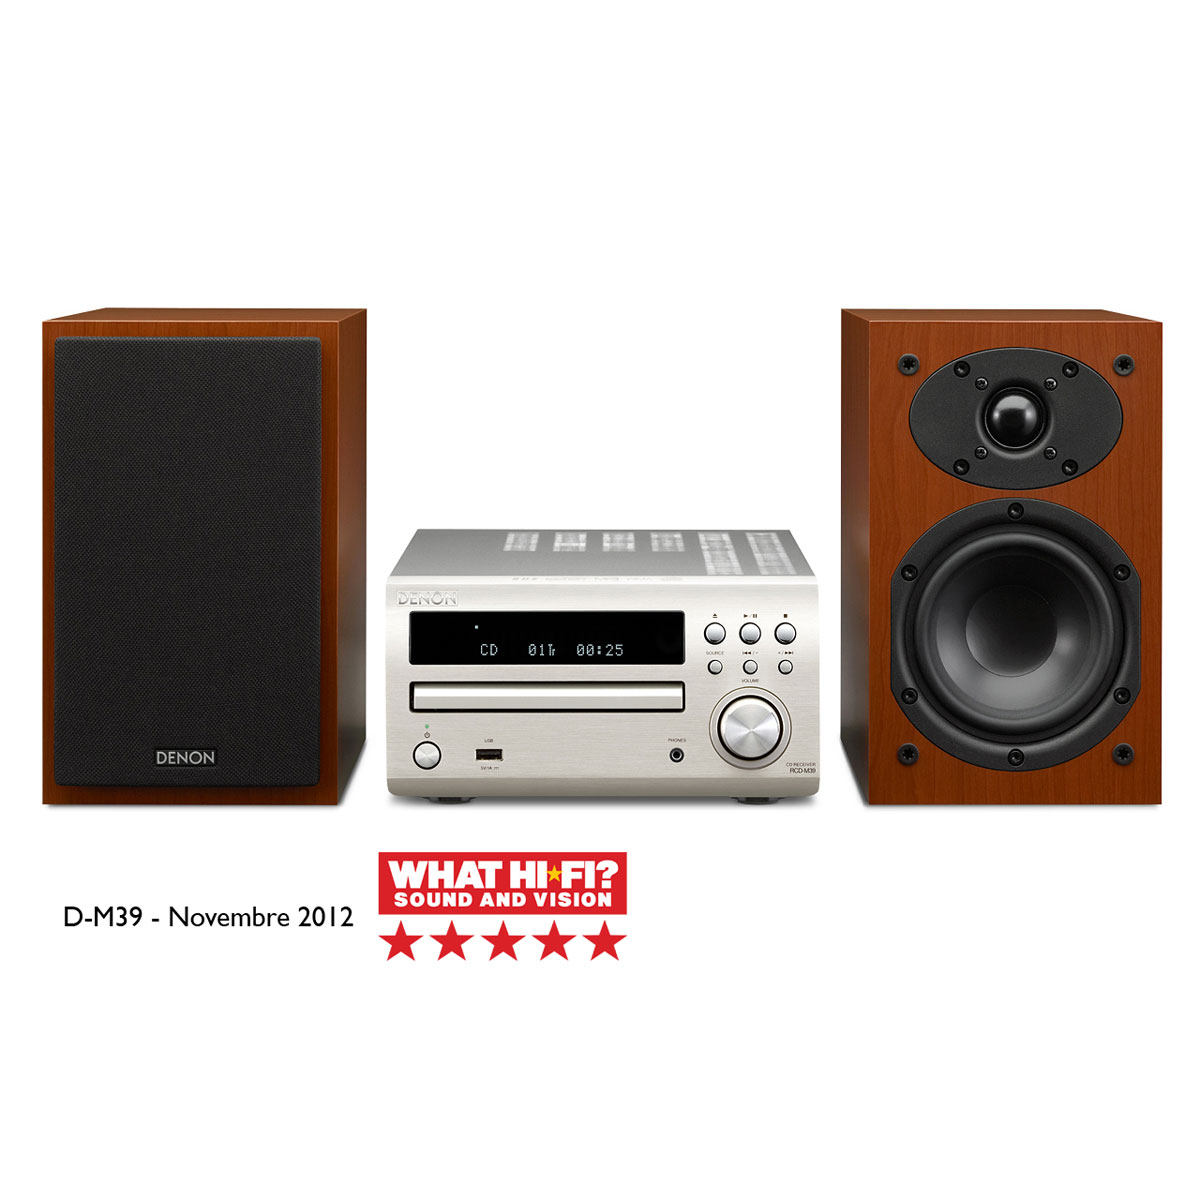 denon d m39 argent bois cha ne hifi denon sur ldlc. Black Bedroom Furniture Sets. Home Design Ideas